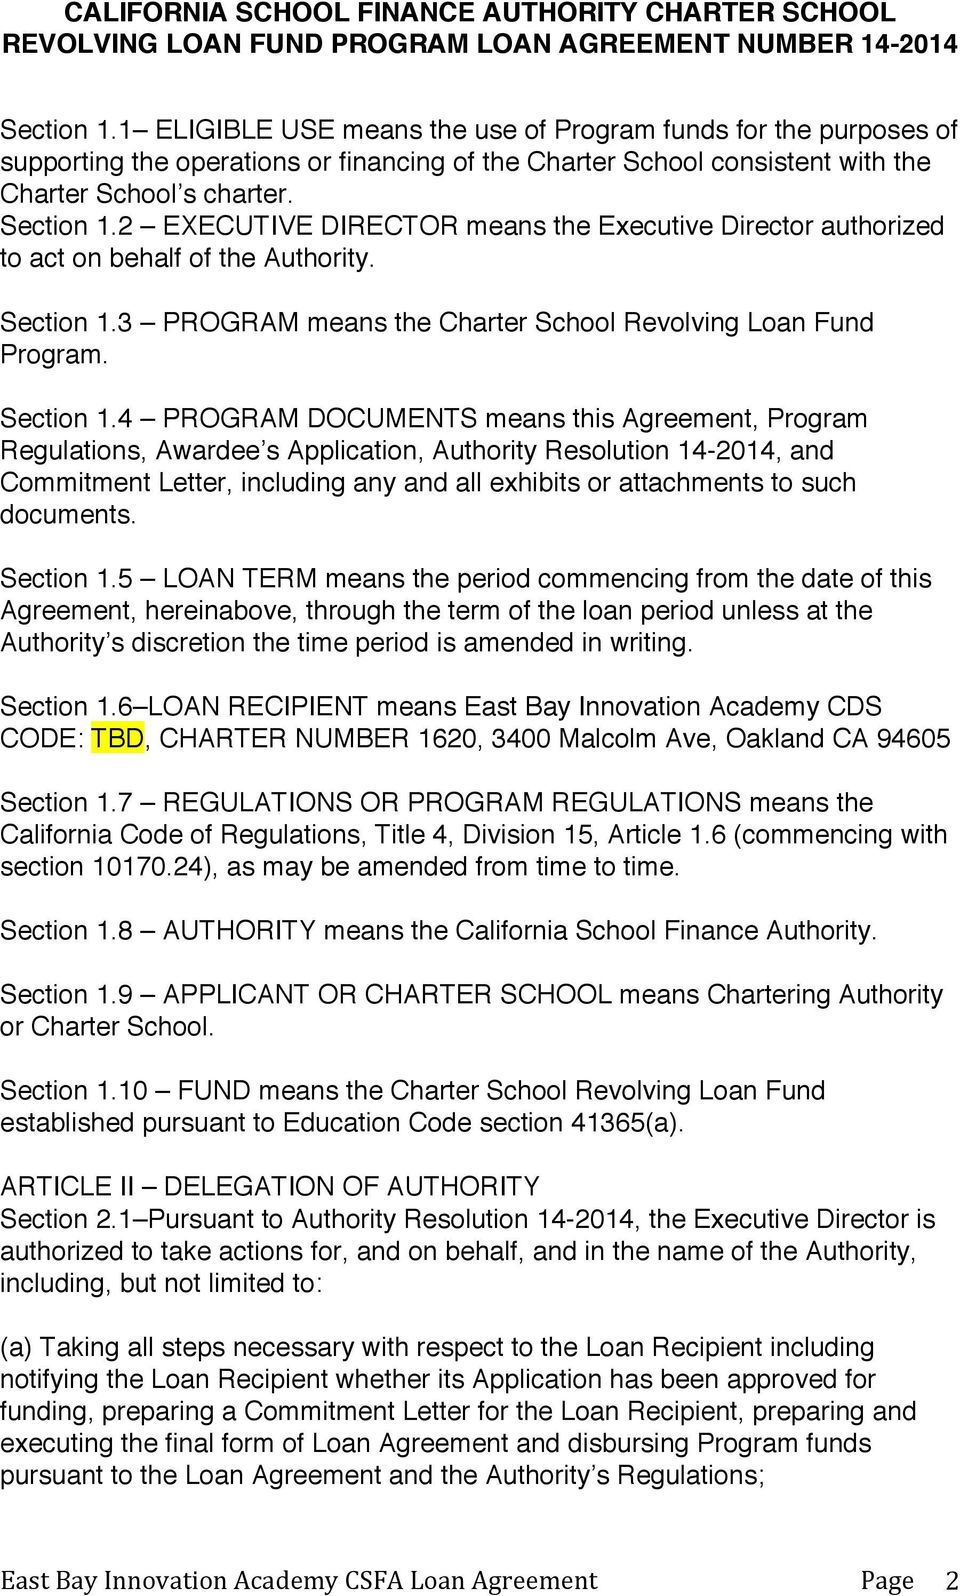 3 PROGRAM means the Charter School Revolving Loan Fund Program. Section 1.